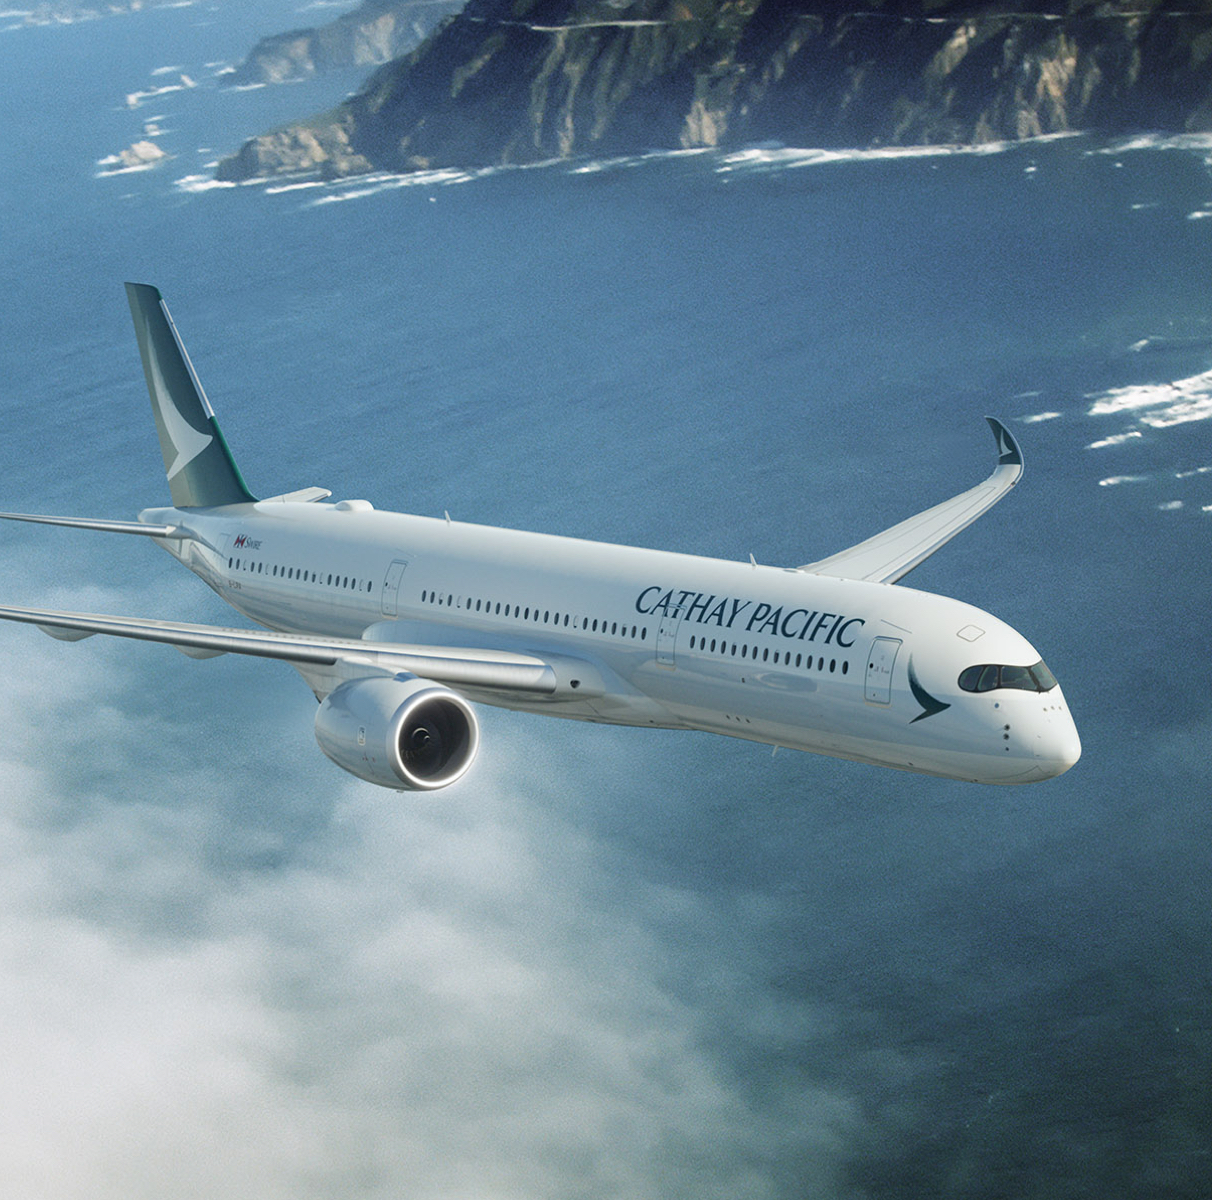 Cathay Pacific launches sale to Bangkok, Seoul, Tokyo, Osaka and more. Book from 9 - 21 Oct 19